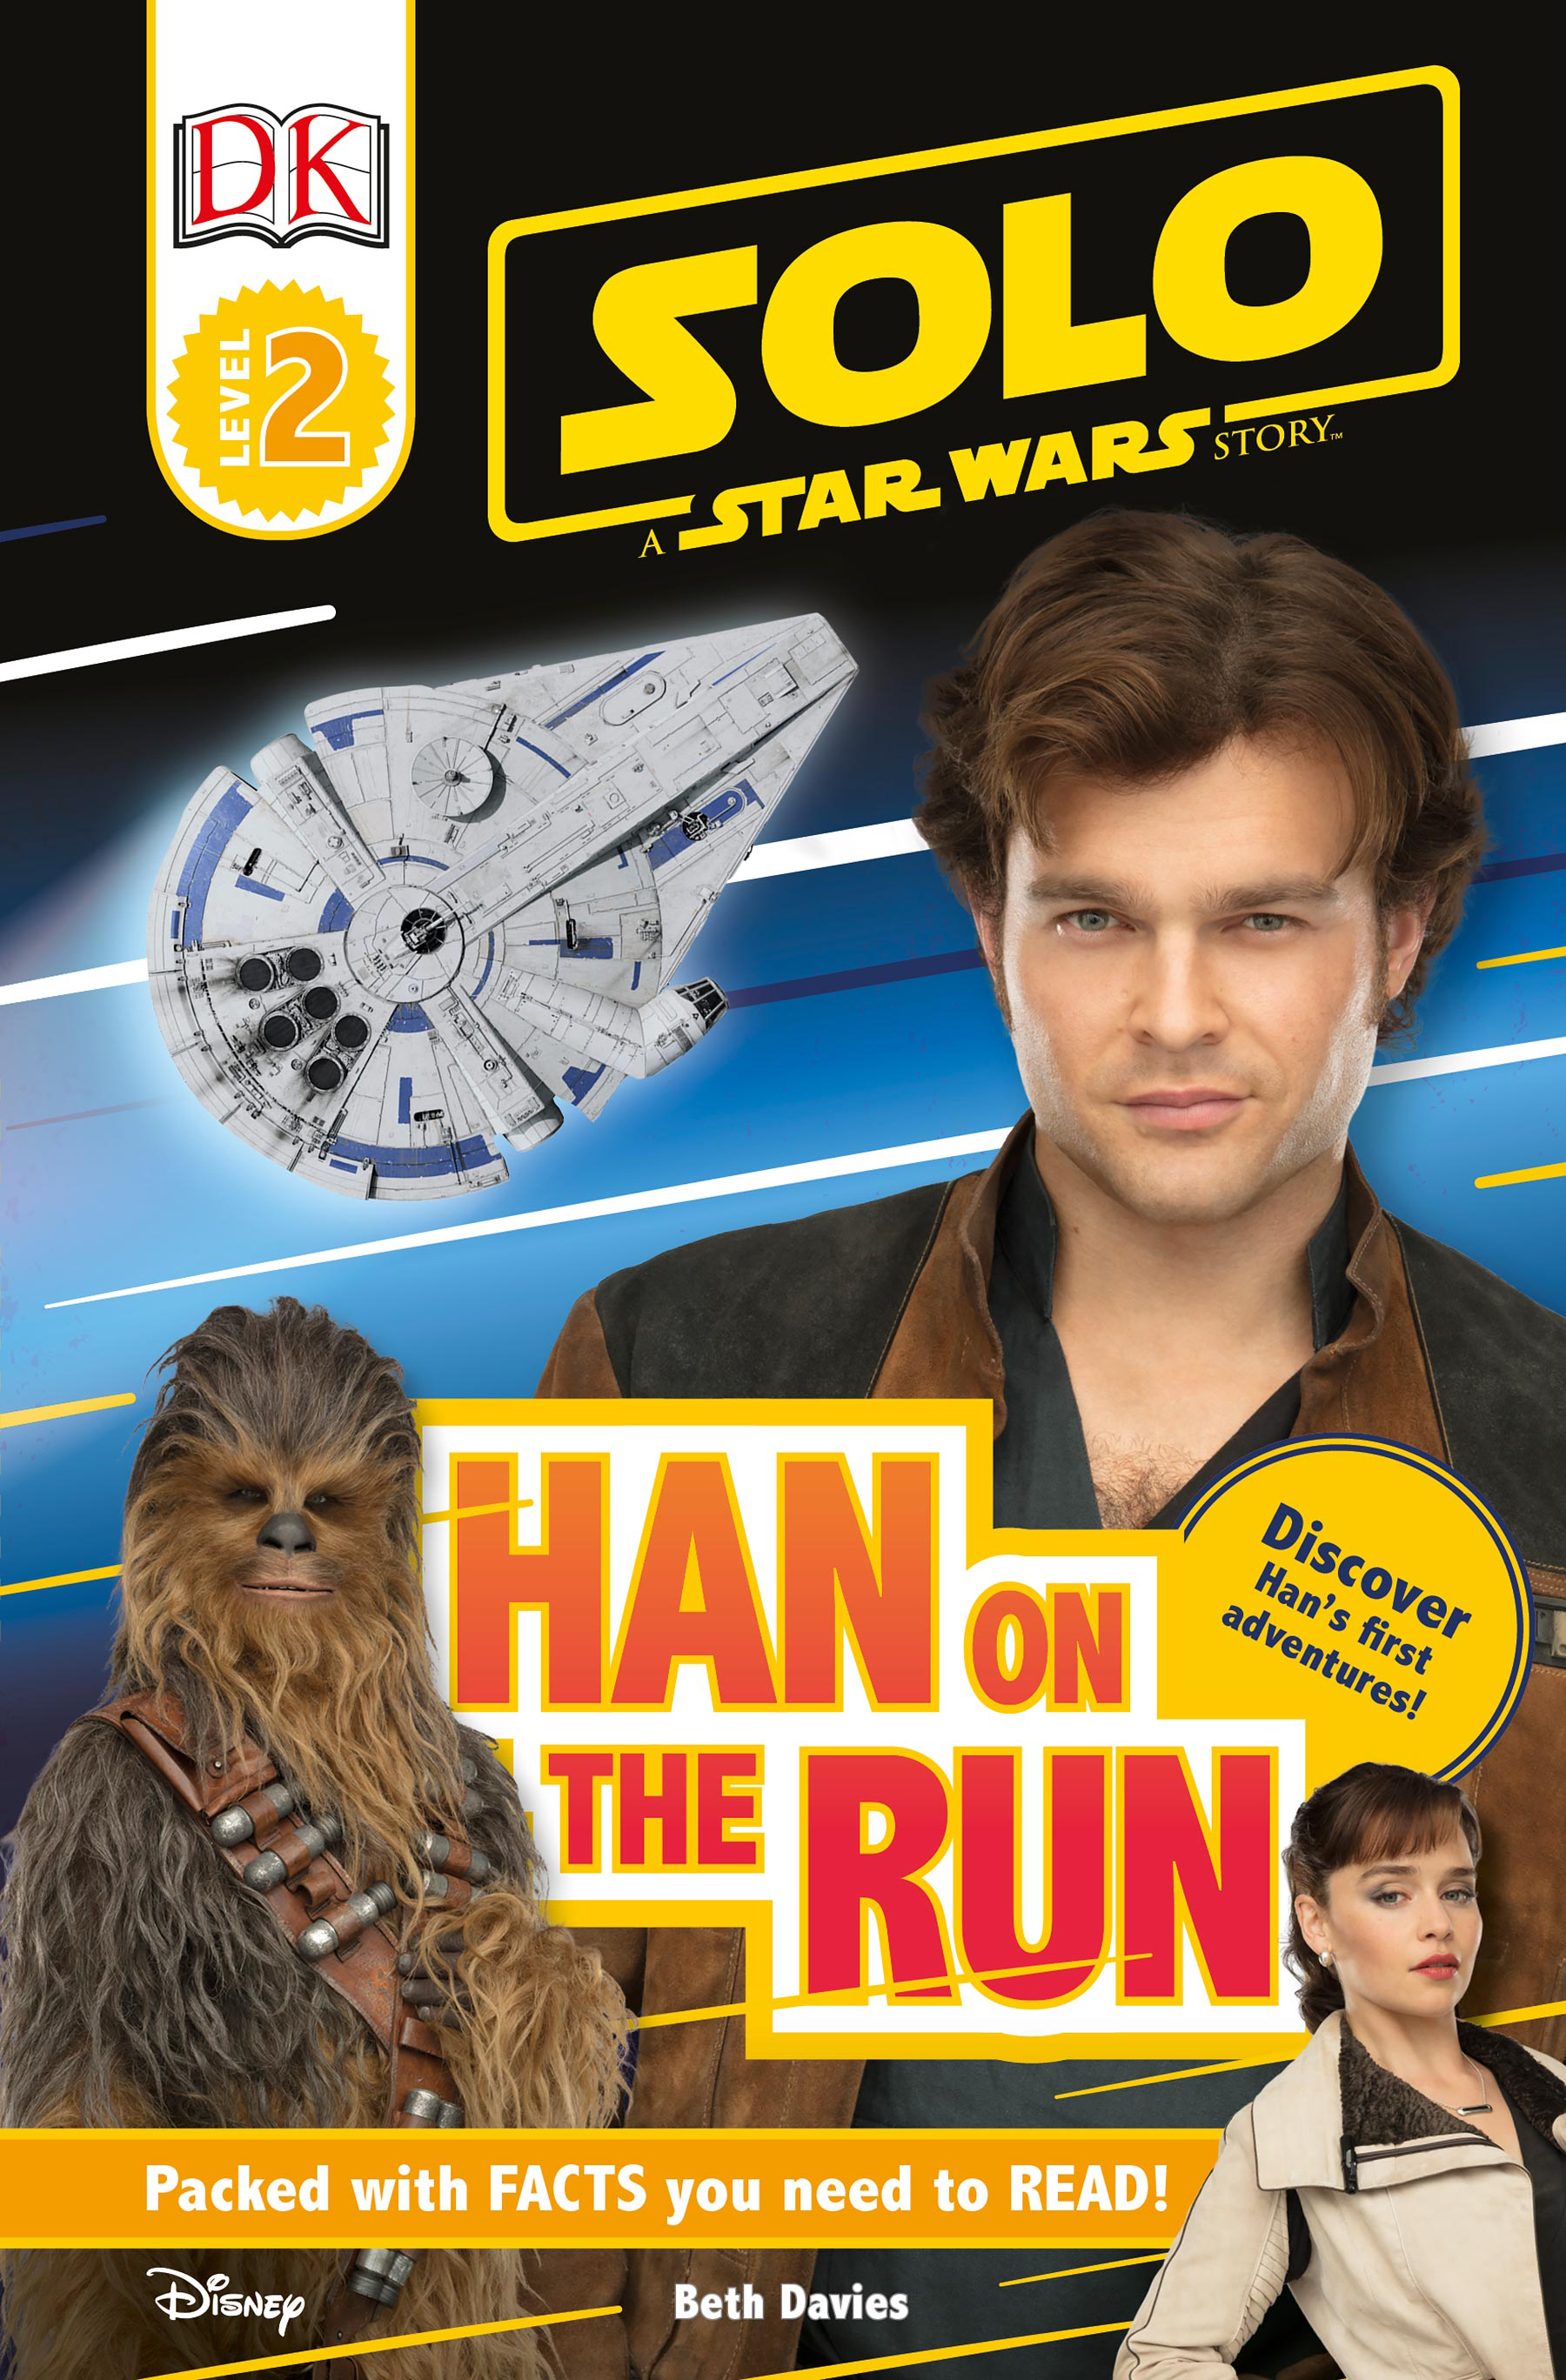 Solo: A Star Wars Story: Han on the Run